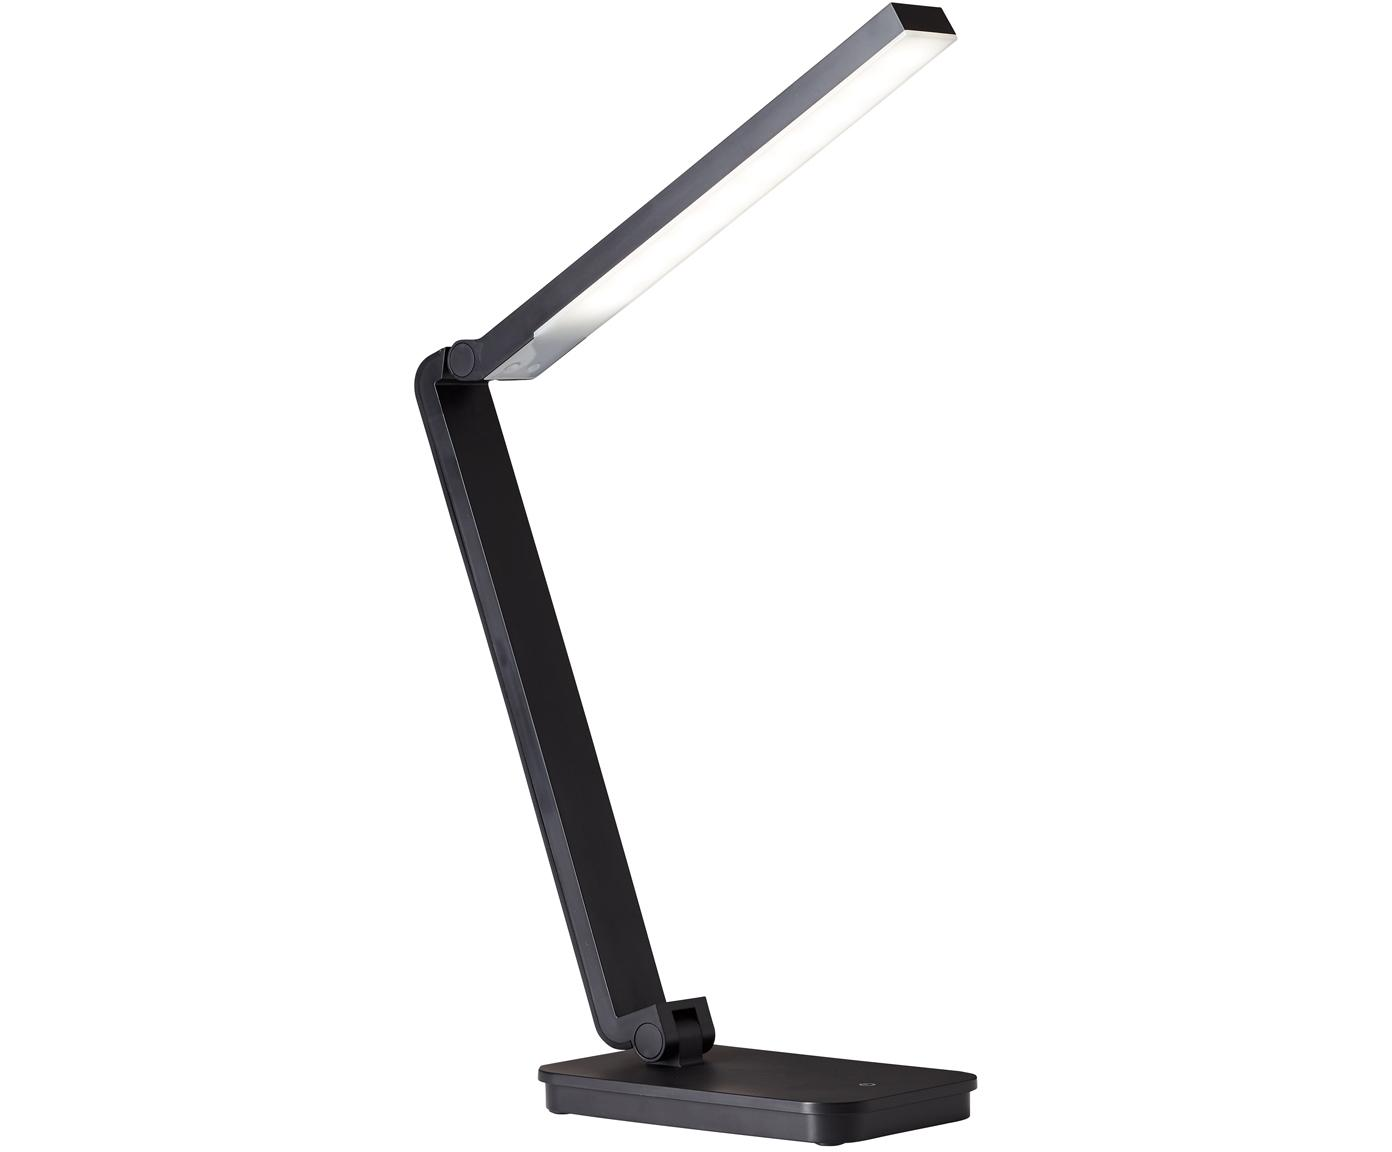 Lámpara de mesa LED regulable Tori, Plástico, Negro, An 11 x Al 61 cm